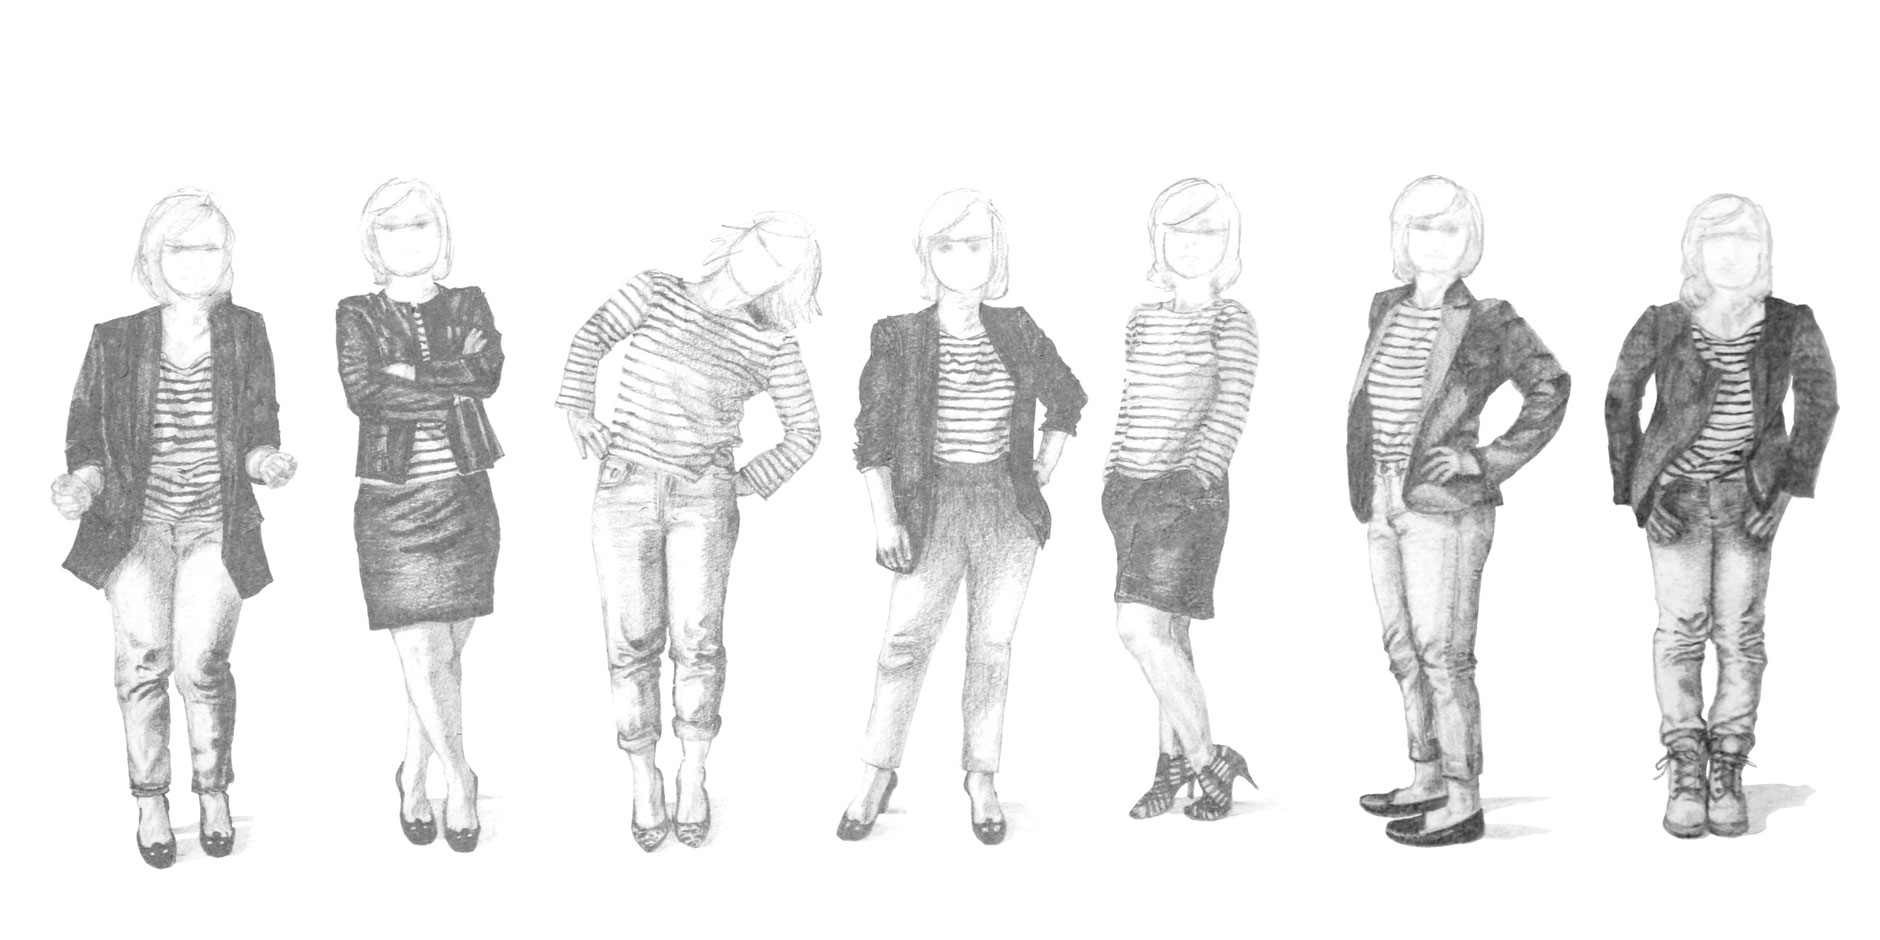 Step 2 is about drawing all the details with pencil, including the striped shirts, for the 7 figures|  7 Ways to Wear a Breton Shirt , by The Daily Atelier